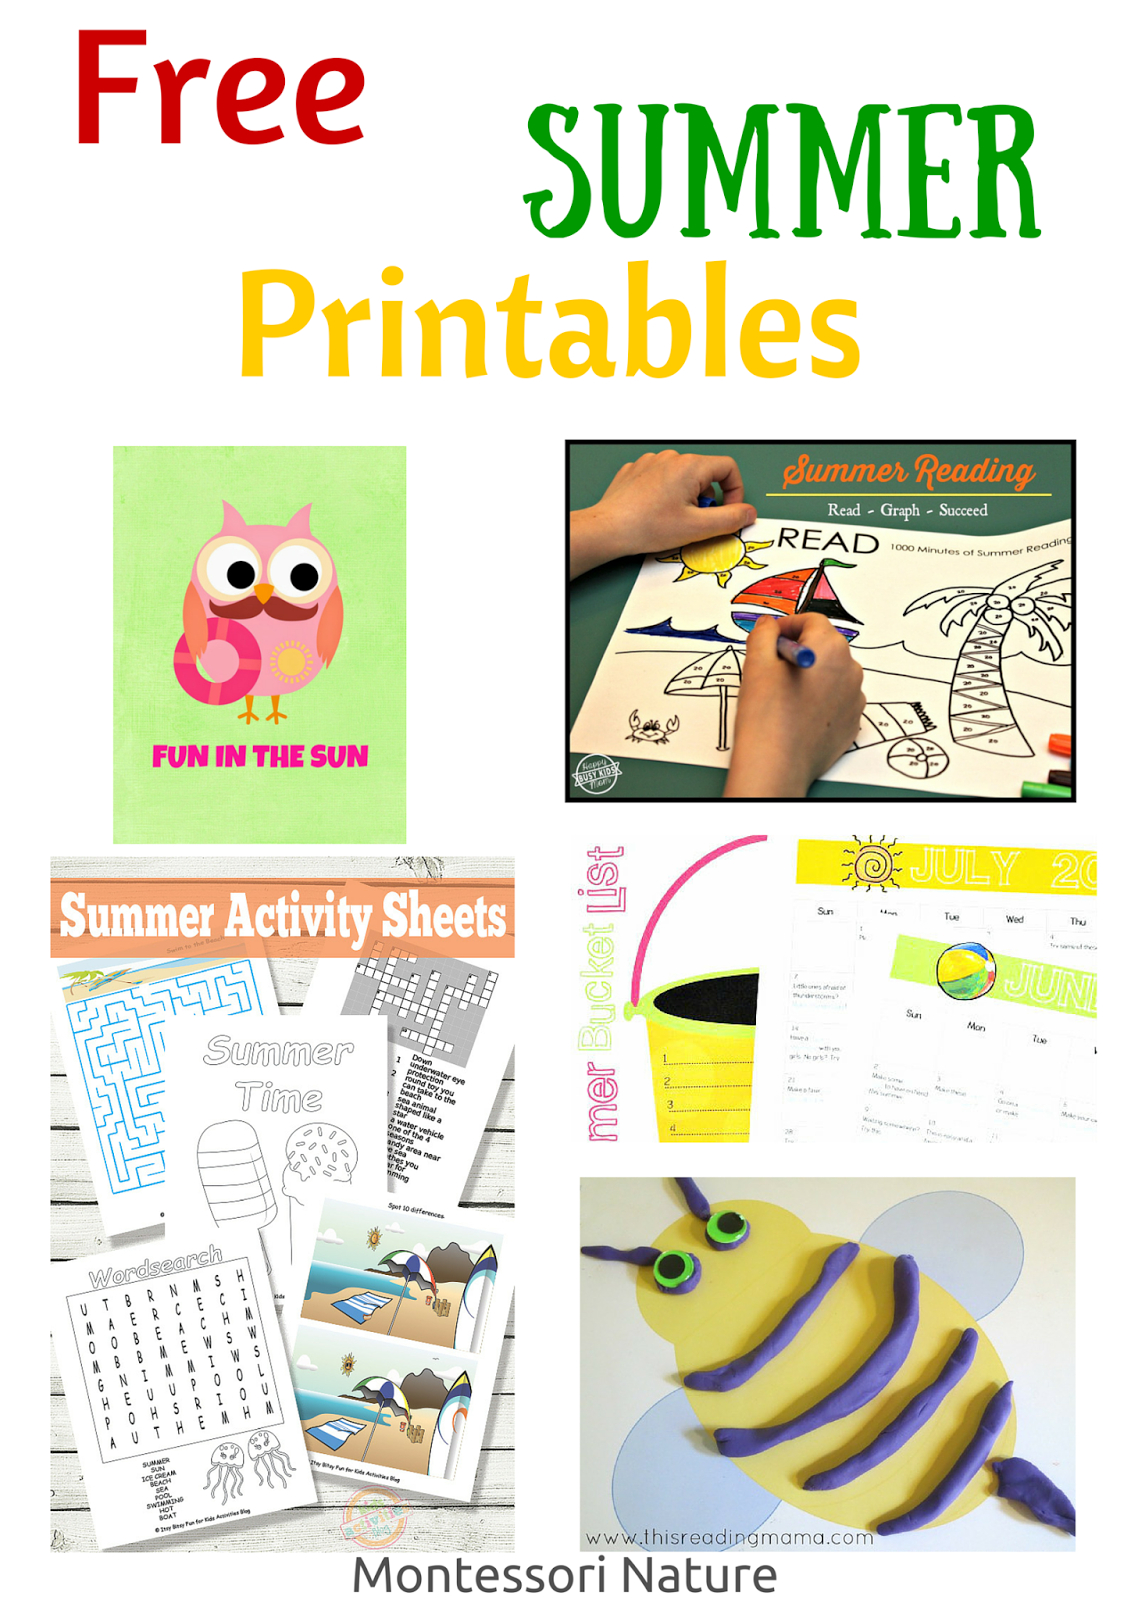 Free Summer Printables - Montessori Nature - Free Summer Printables